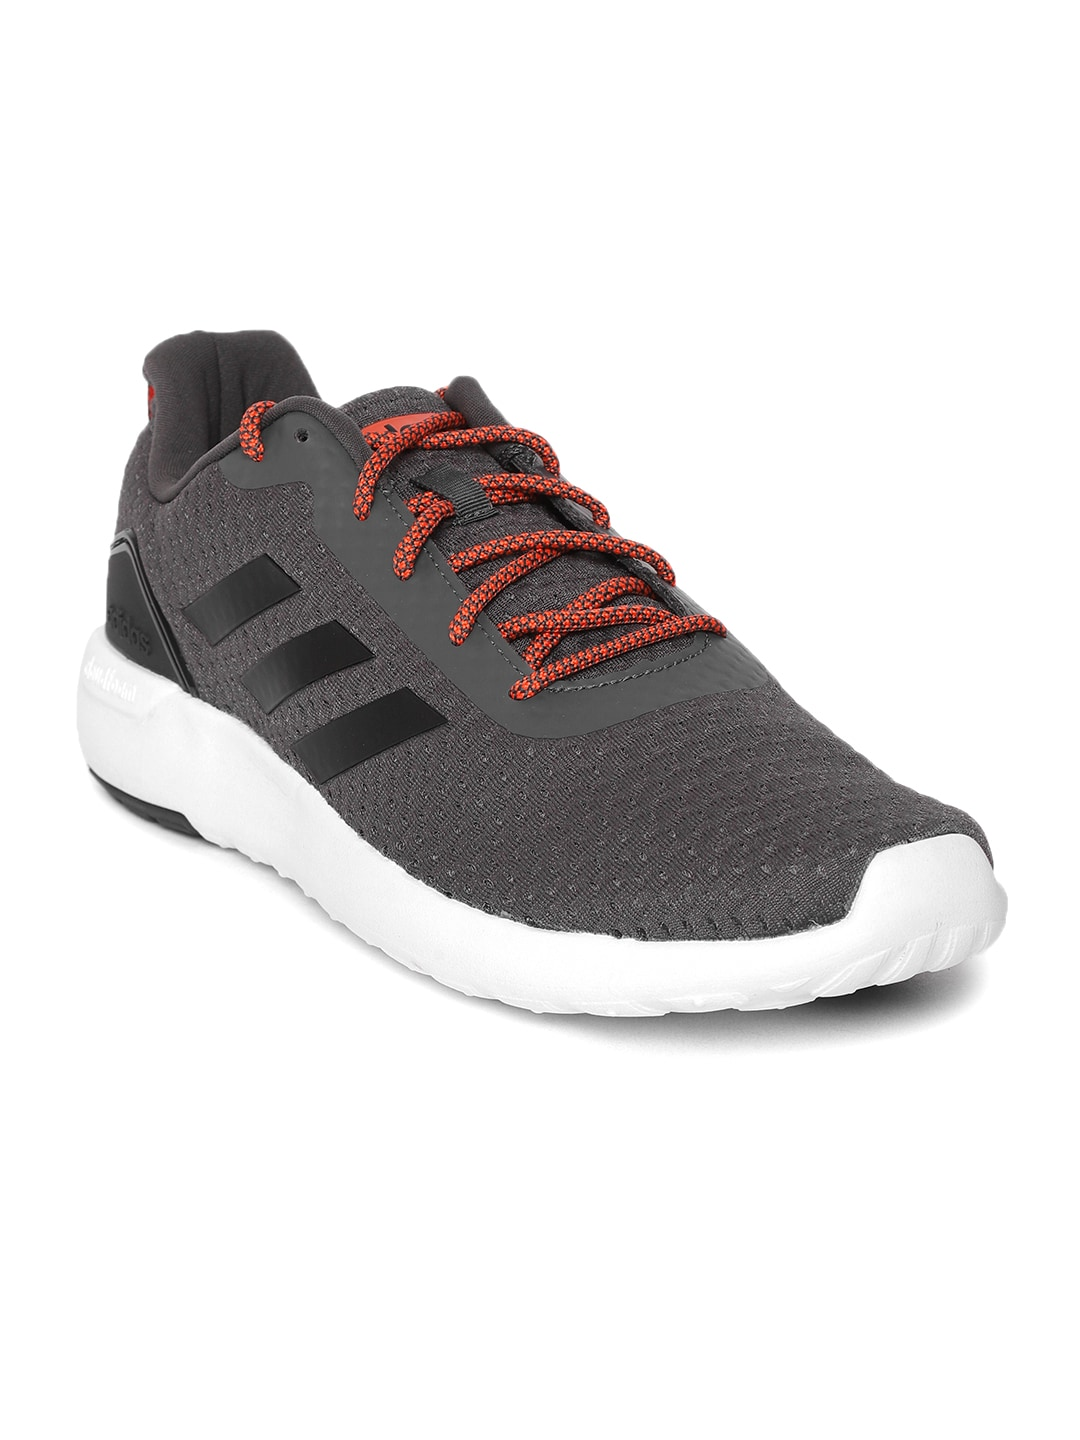 360ea21acf90a Adidas Sports Shoes - Buy Addidas Sports Shoes Online